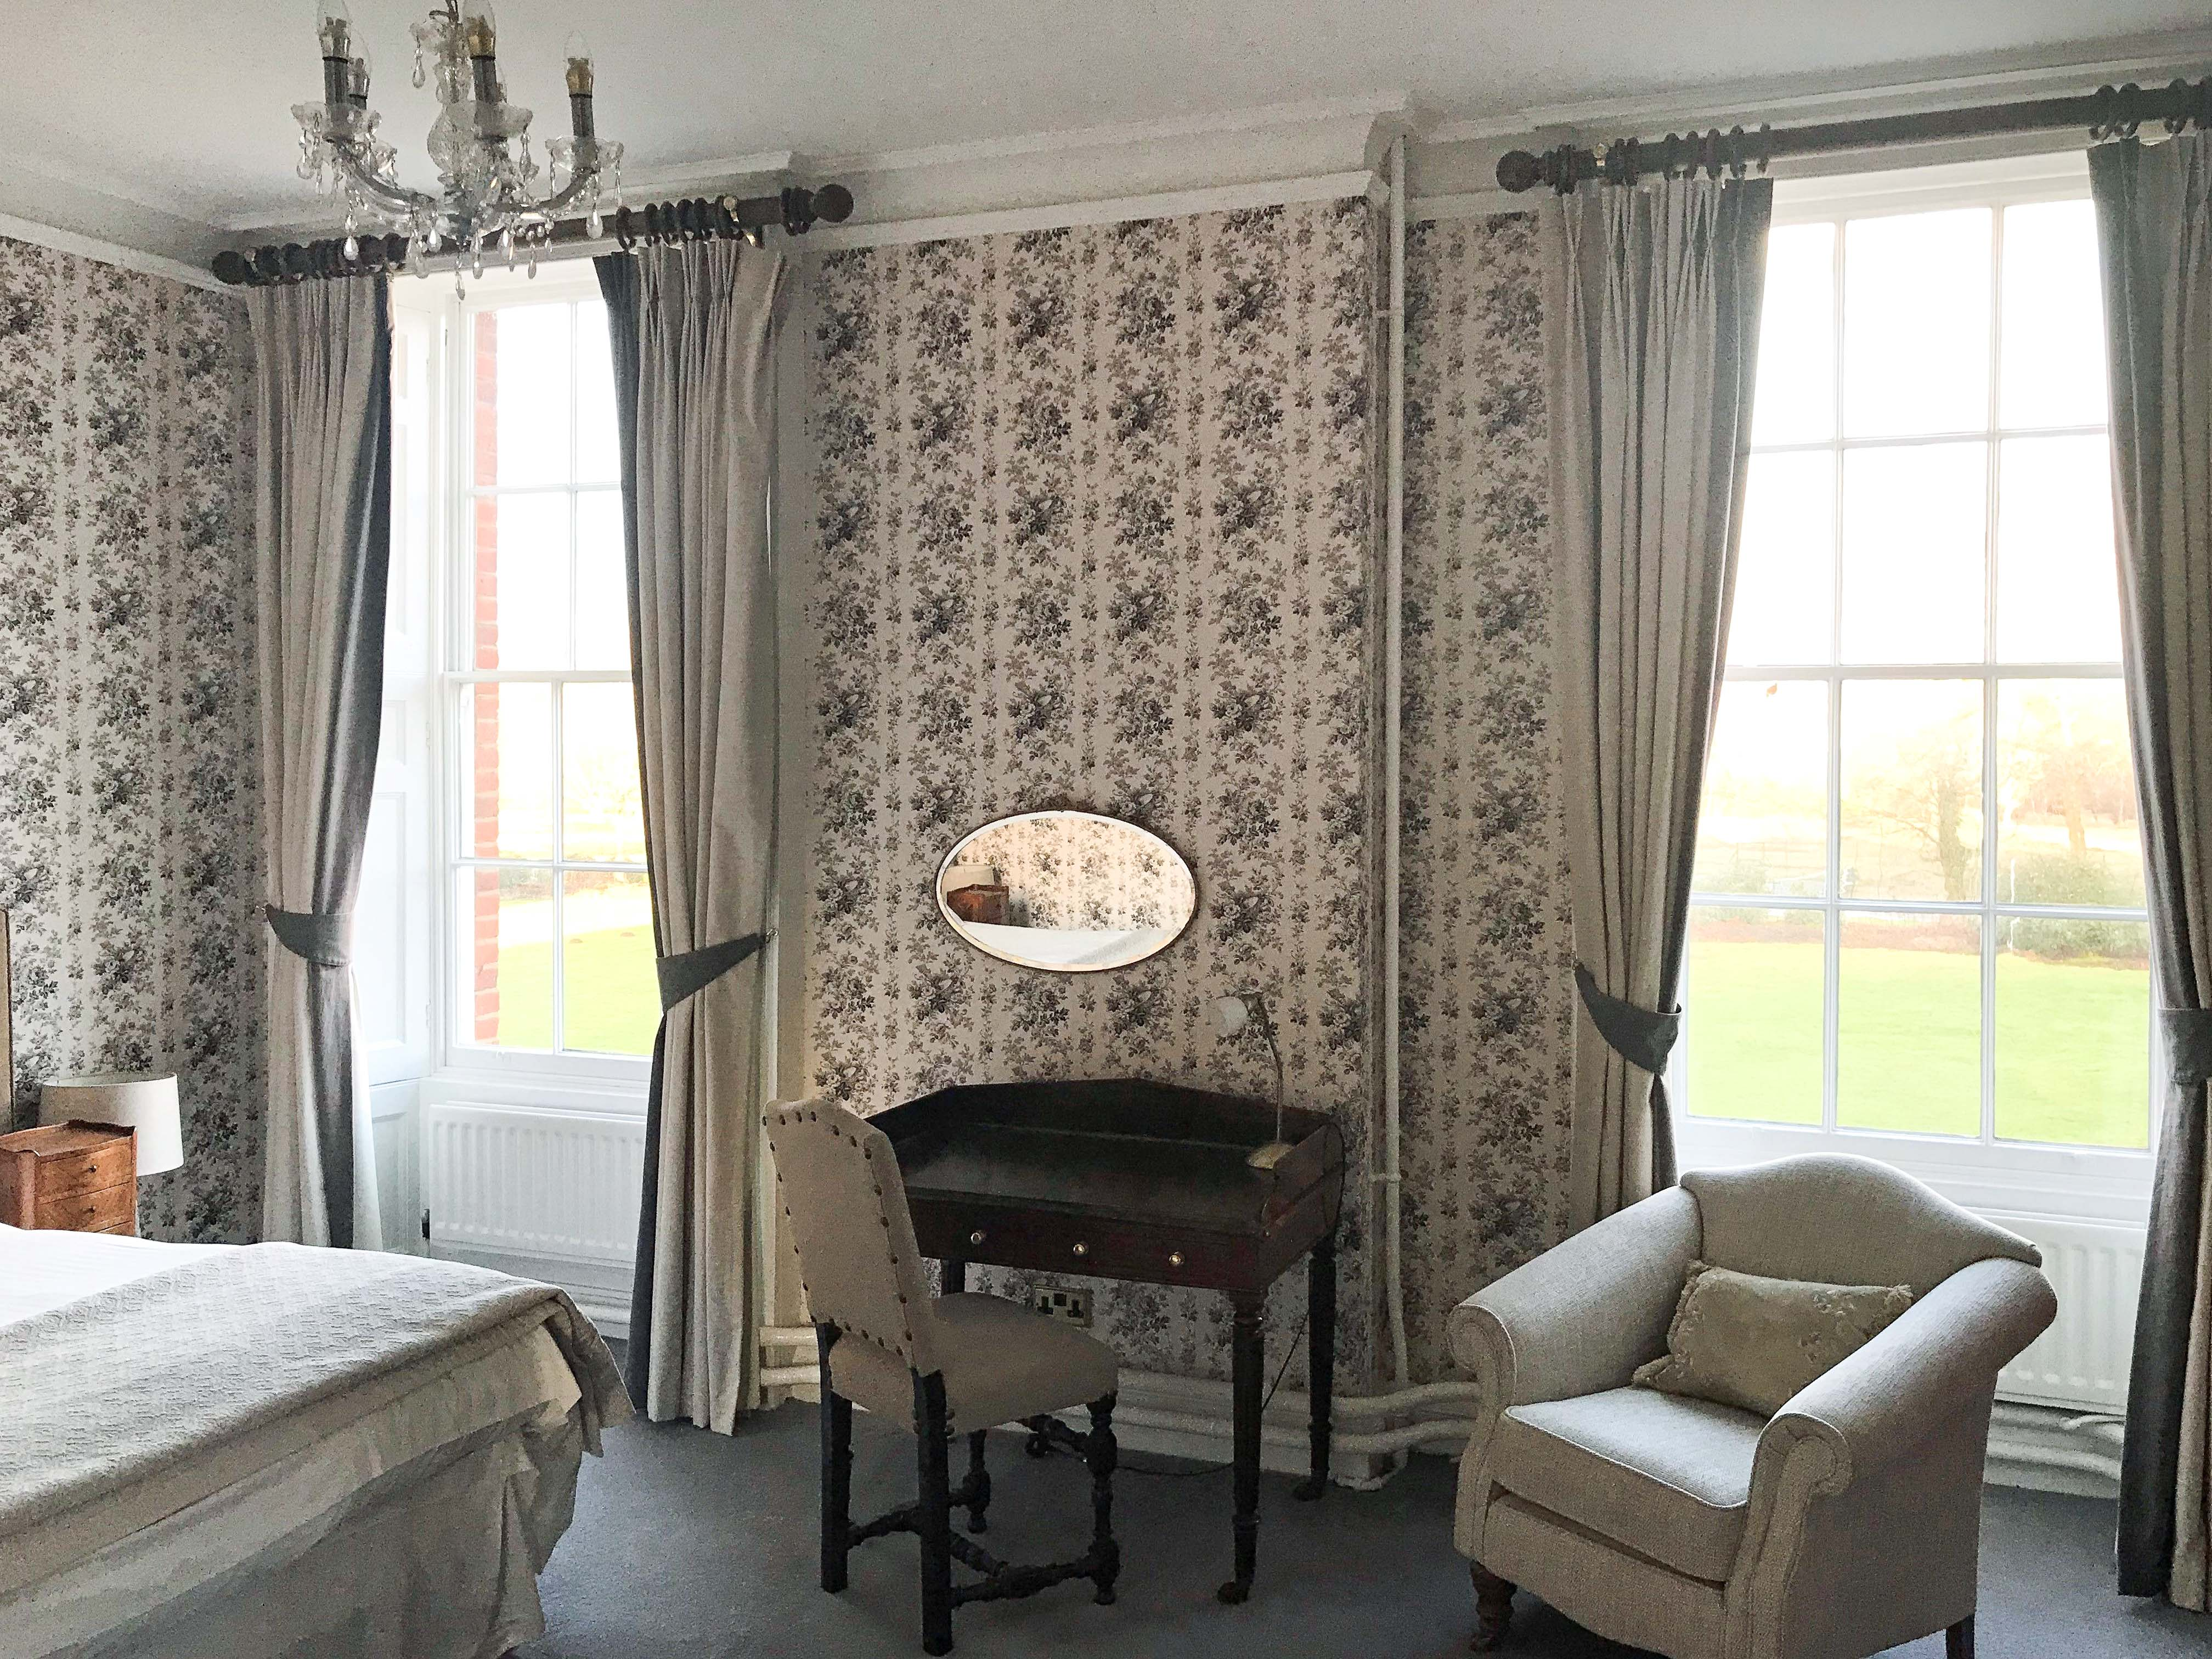 Guest bedroom at Cumberland Lodge